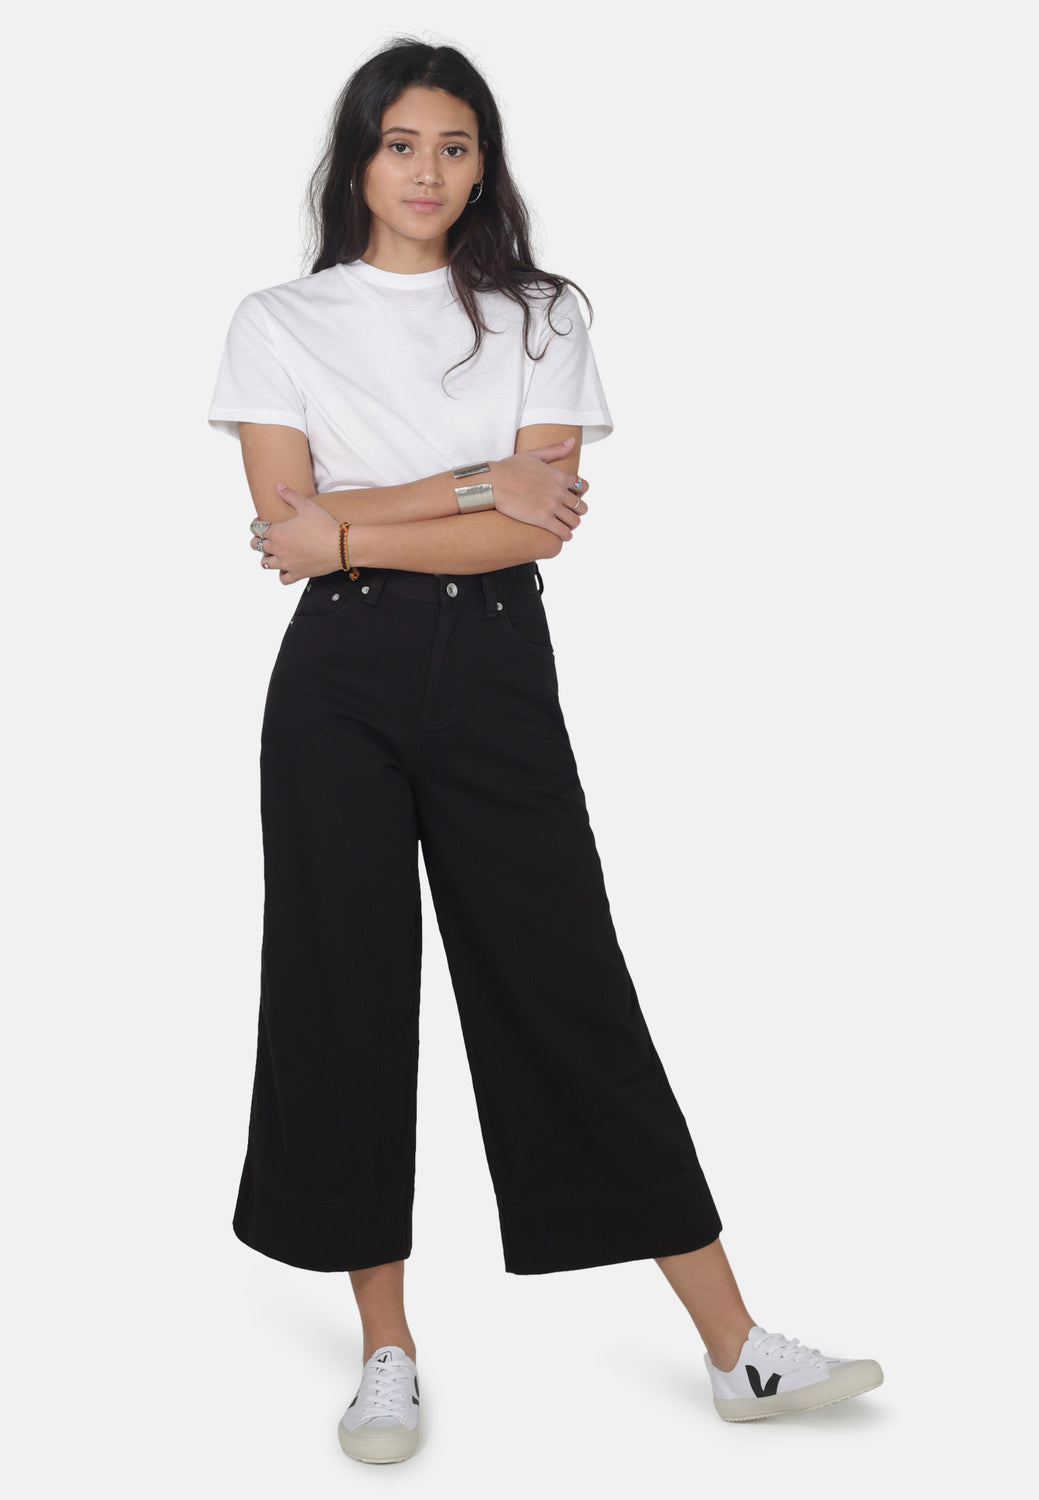 WIDE LEG // Organic Cropped Wide Leg Jeans in Black - Monkee Genes Organic Jeans Denim - Women's Cropped Monkee Genes Official  Monkee Genes Official